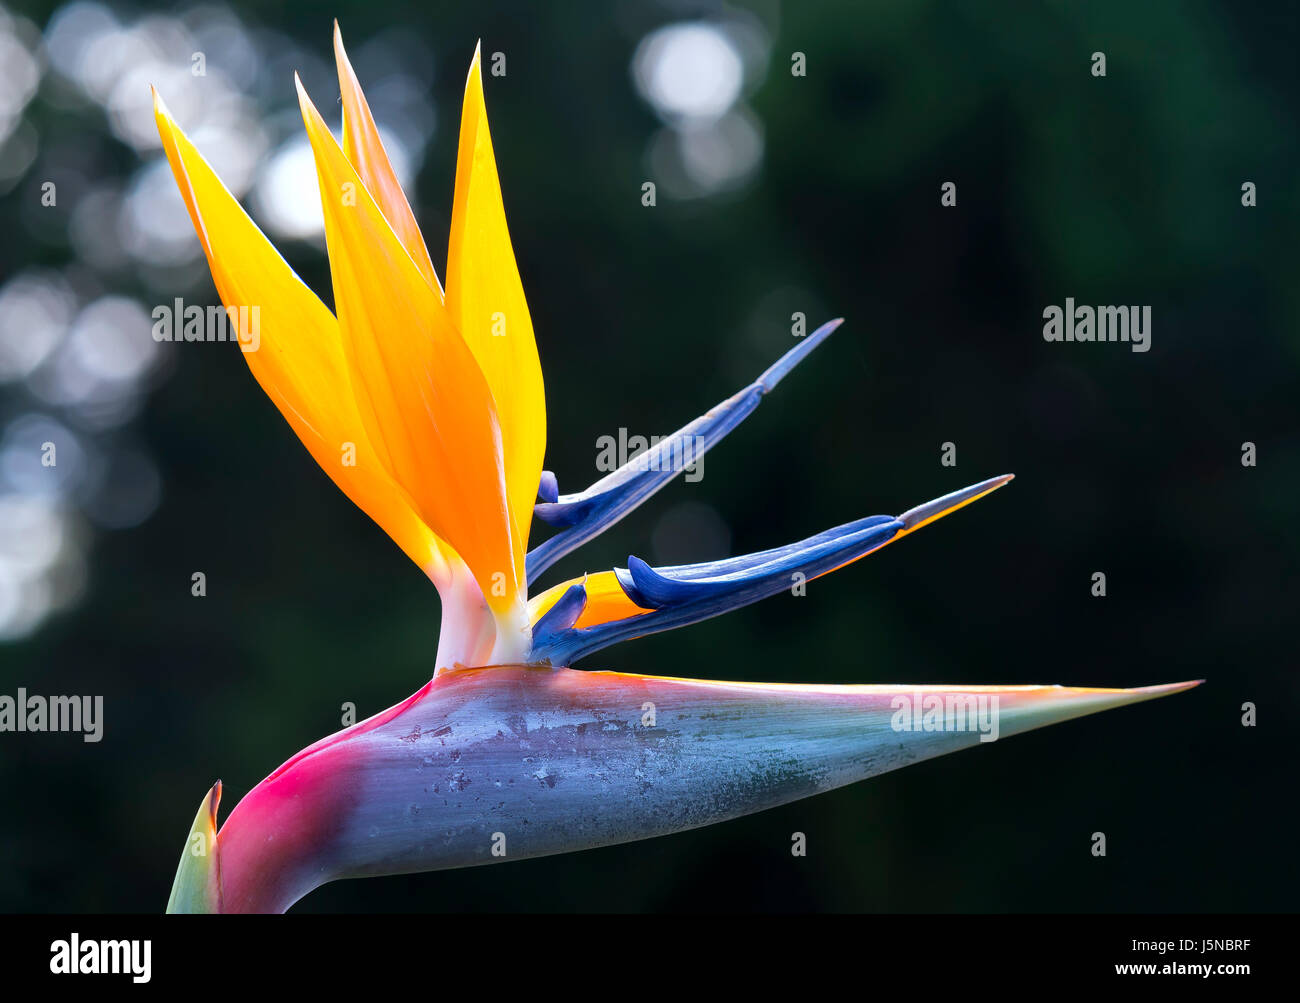 The bird of paradise flowers bloom in the love garden this is the the bird of paradise flowers bloom in the love garden this is the flower that symbolizes flying birds that express freedom in life biocorpaavc